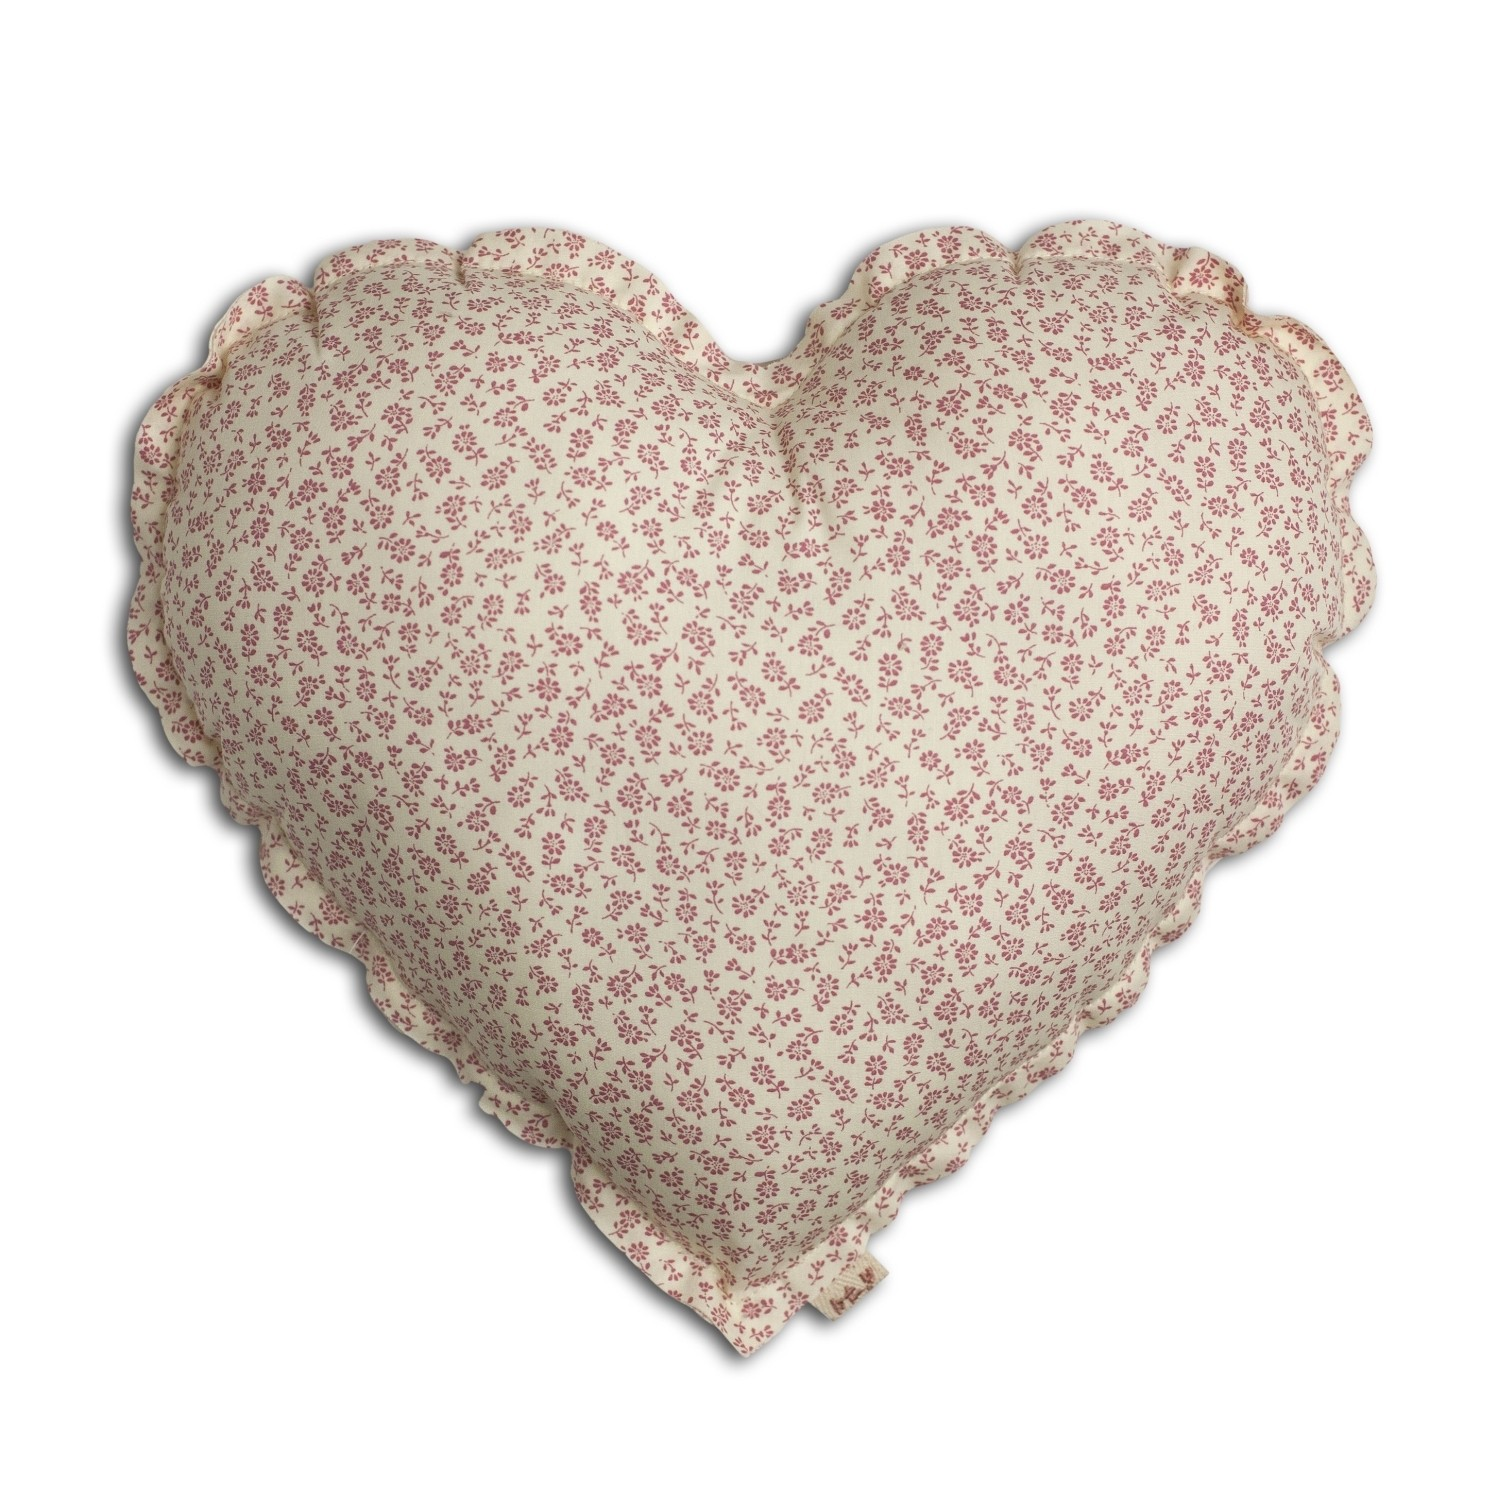 Heart Cushion cream with pink flowers